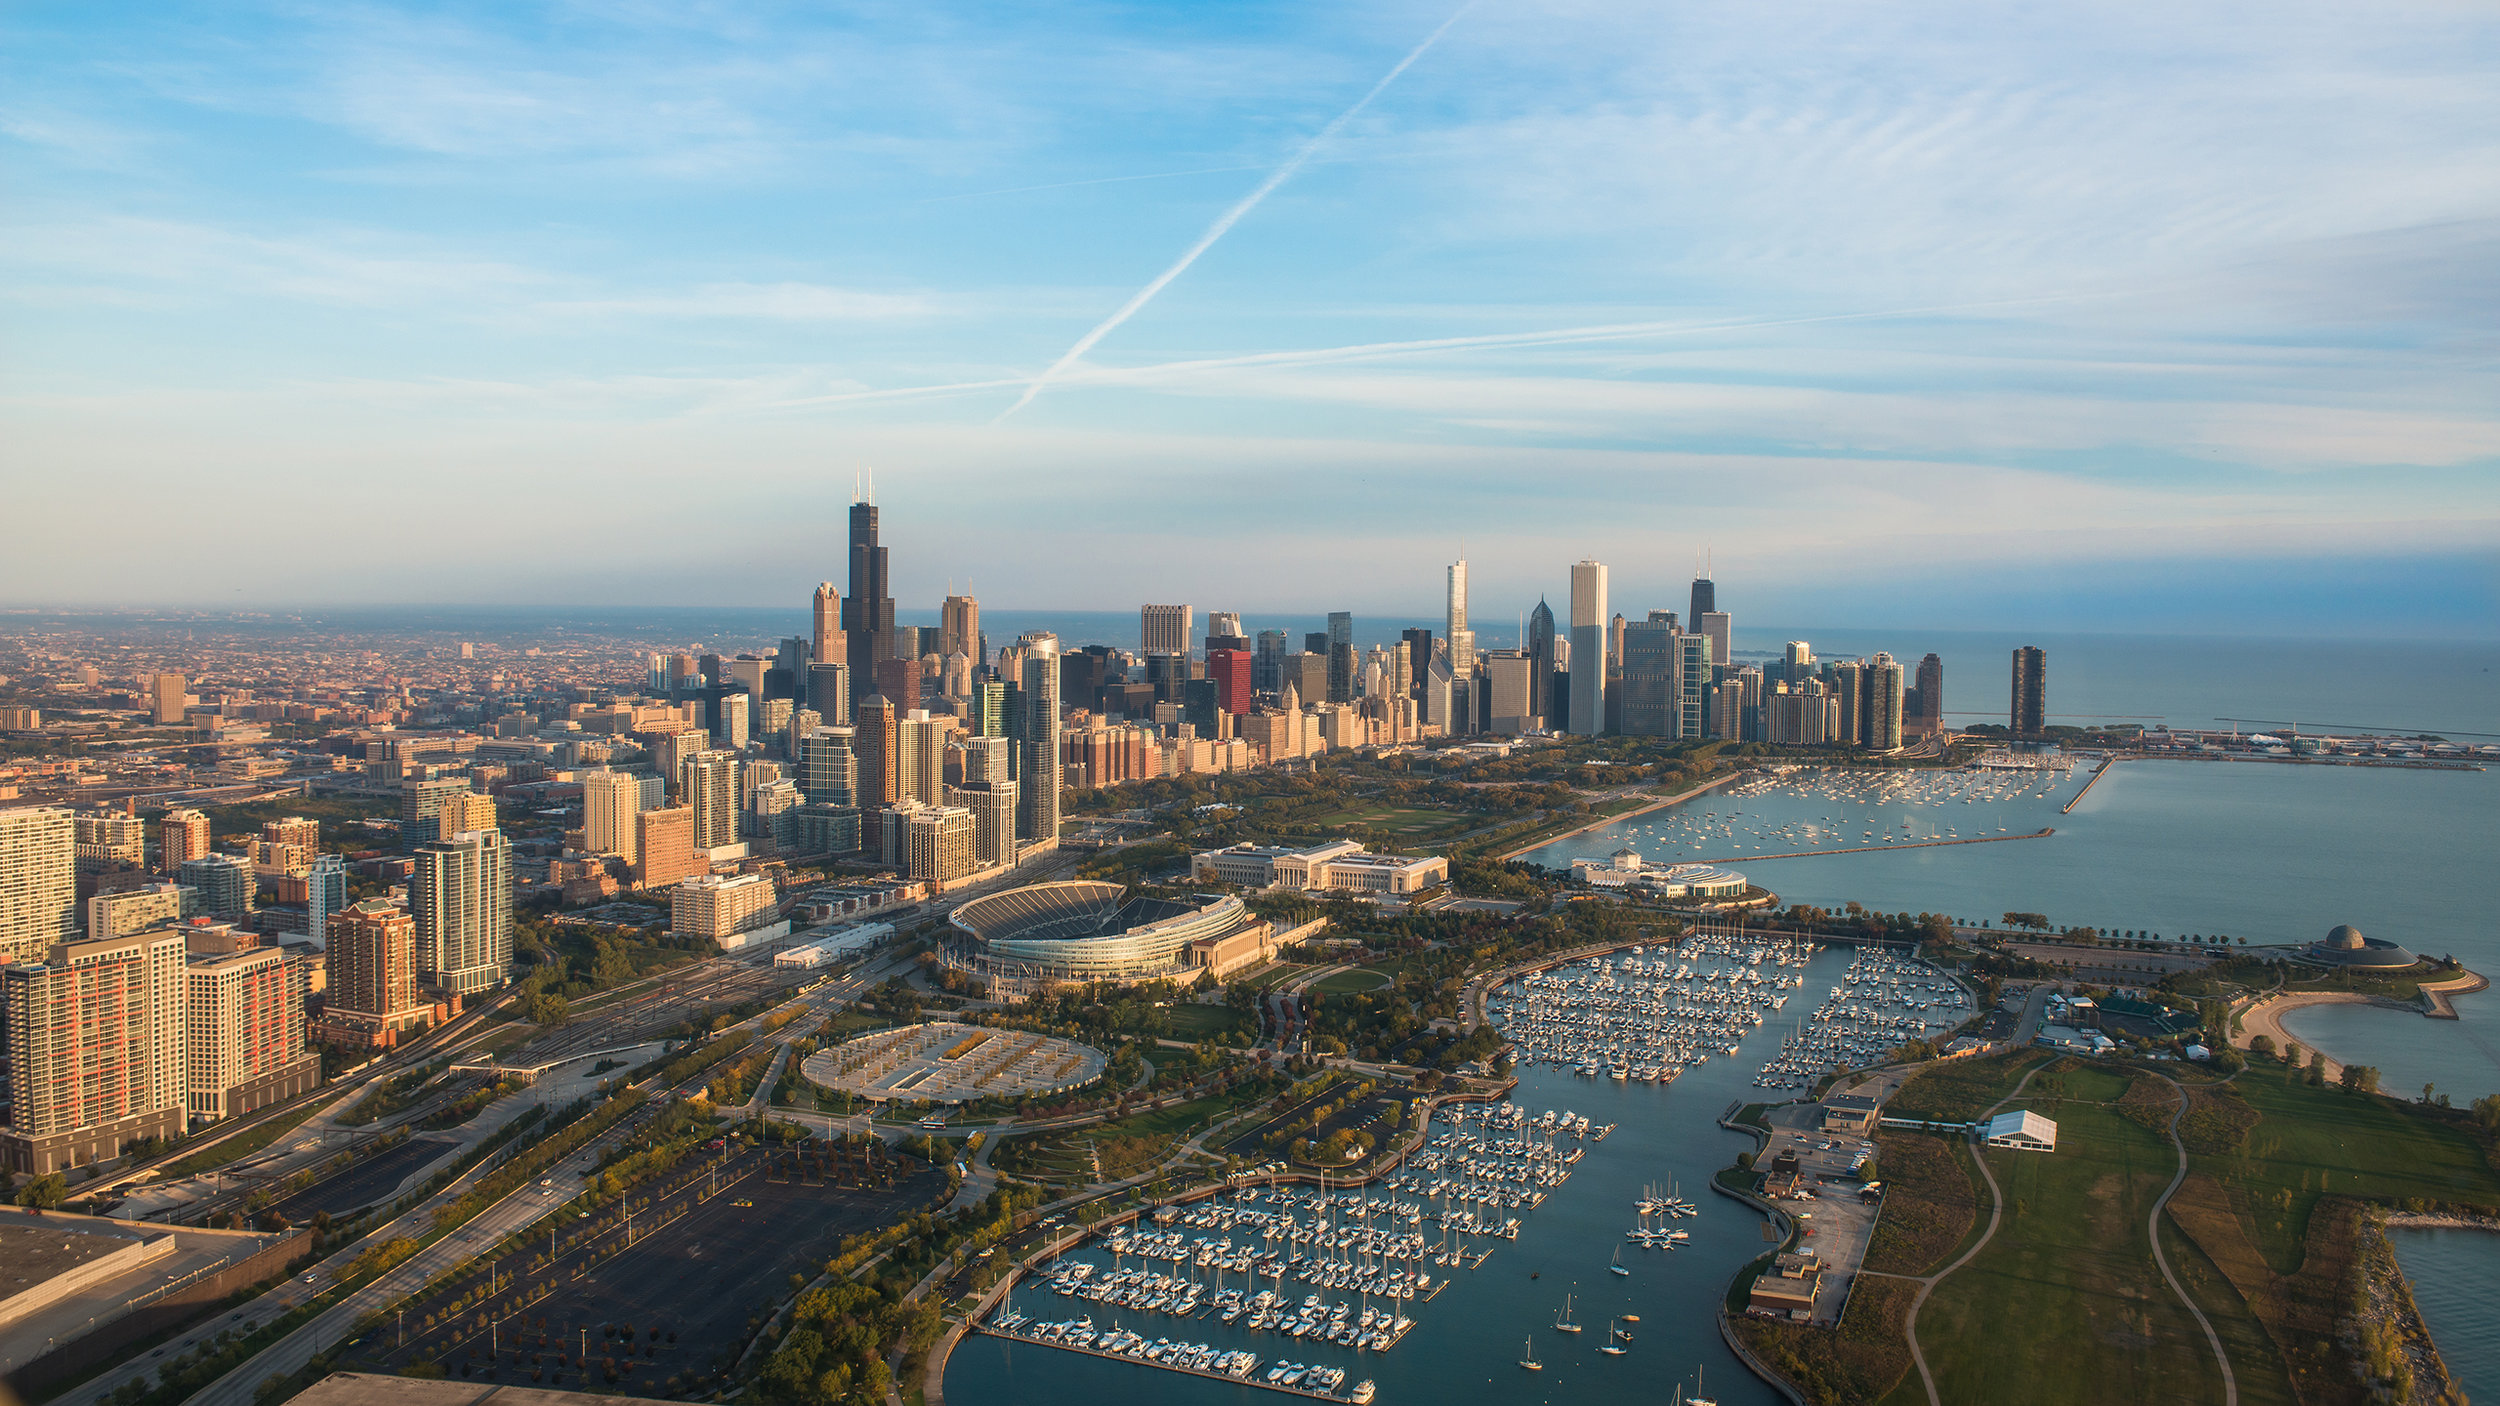 Birds Eye View of Chicago.jpg